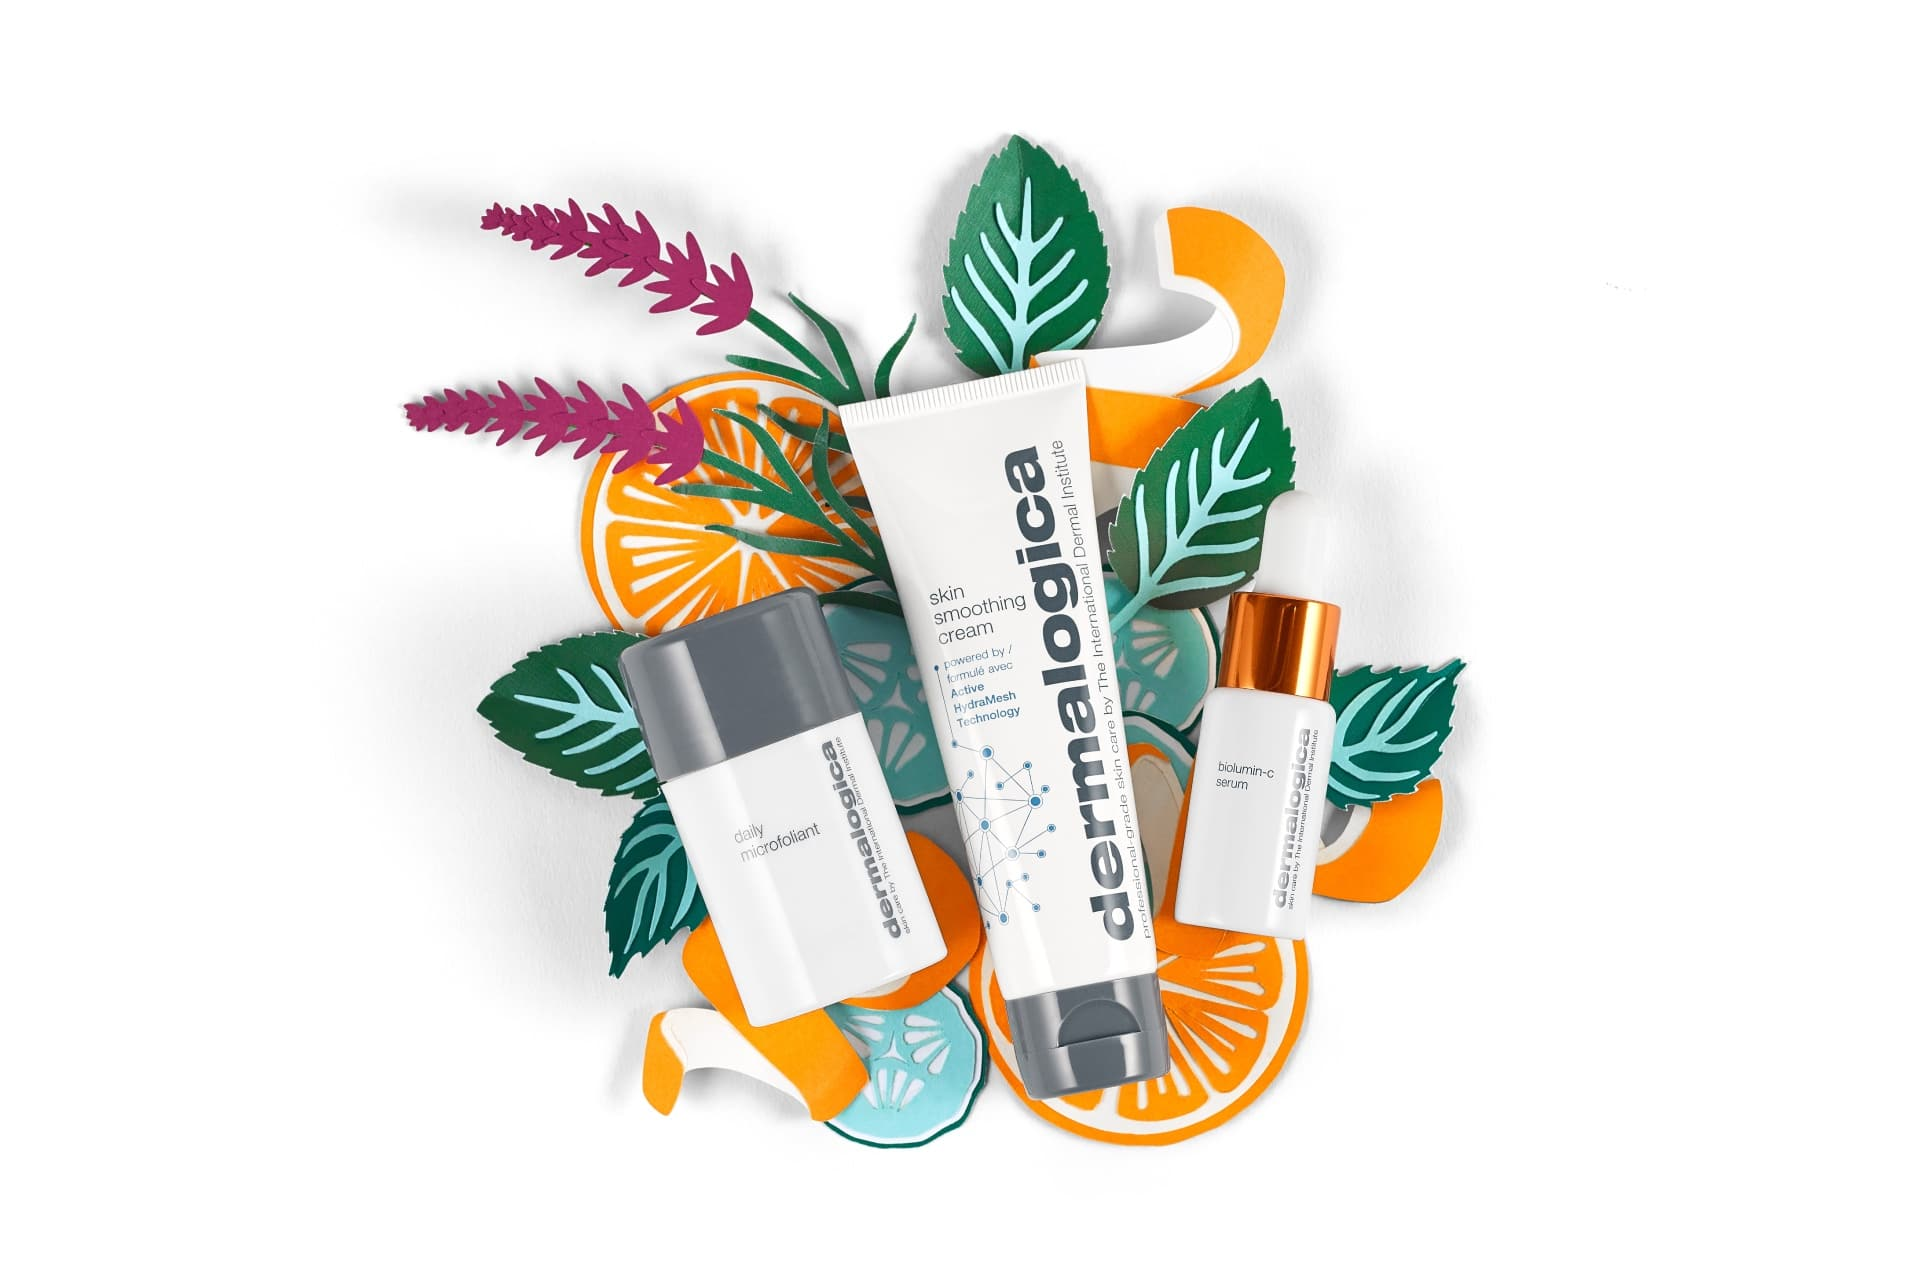 Dermalogica skincare items on a citrus and plant-themed background